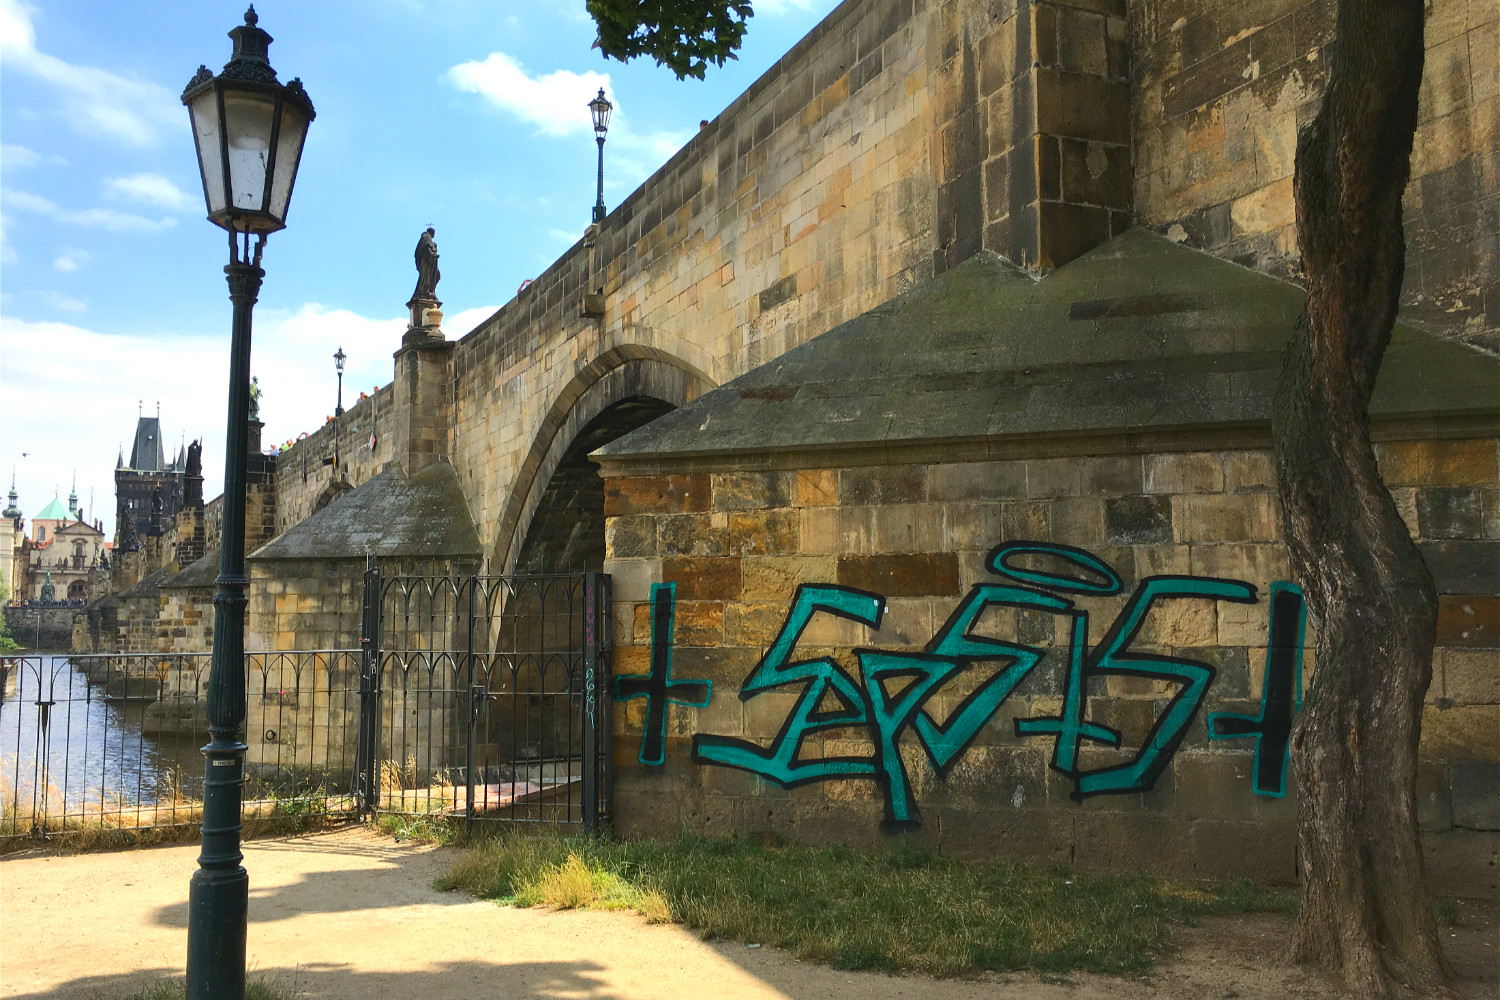 German tourists given suspended sentences, fines for spray painting Prague's Charles Bridge